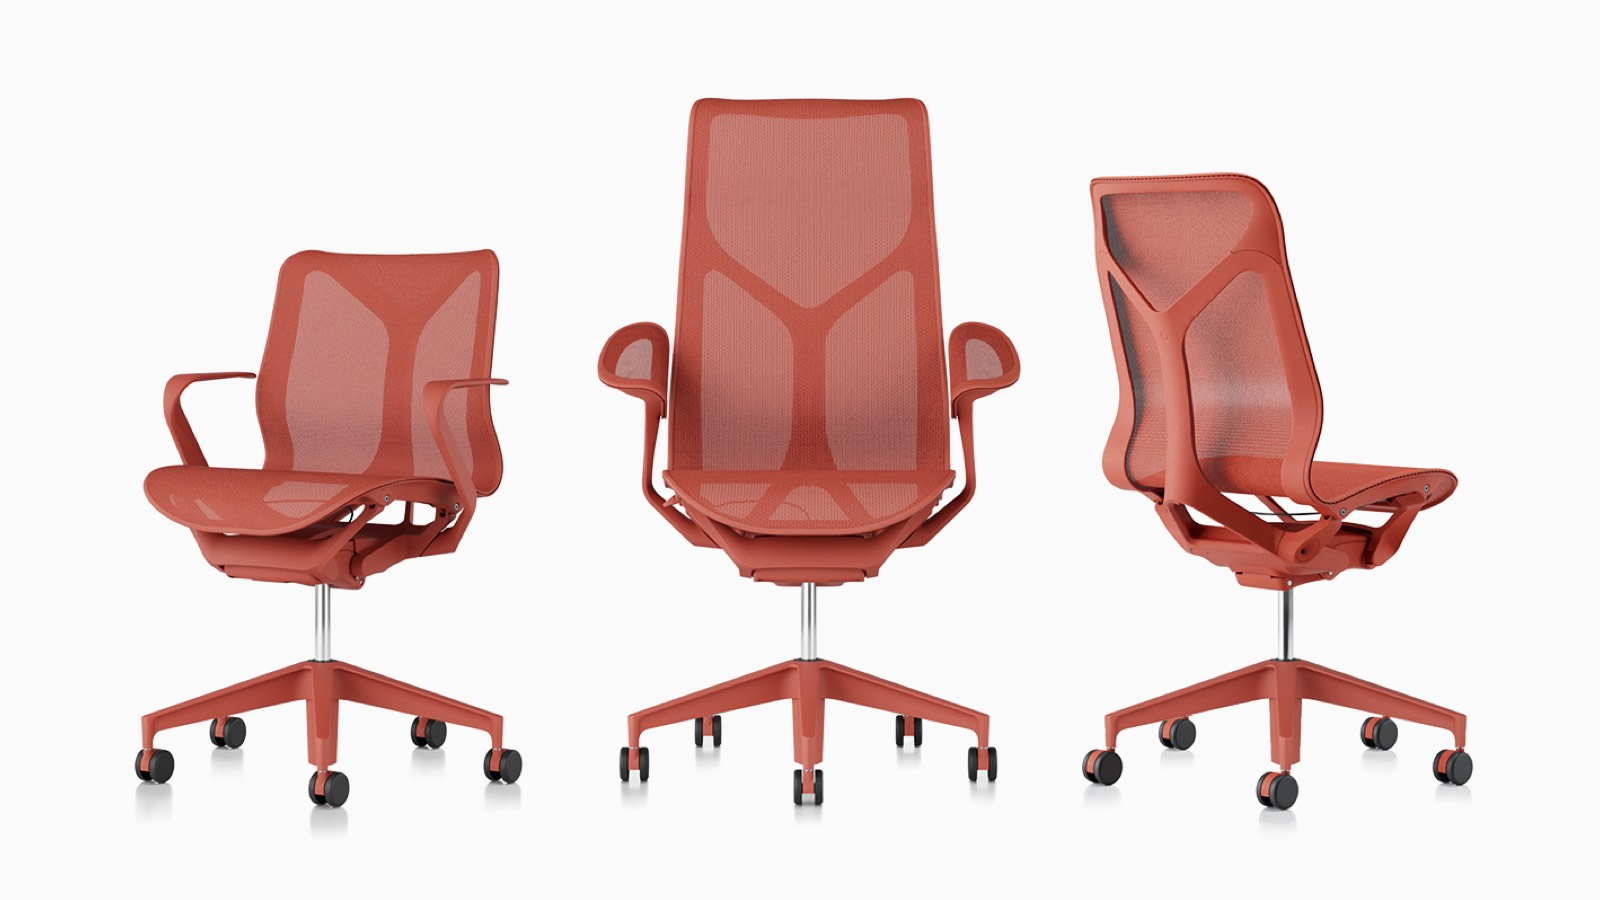 Low-back, high-back, and mid-back Cosm ergonomic desk chairs with suspension materials, bases, and frames in Canyon red.